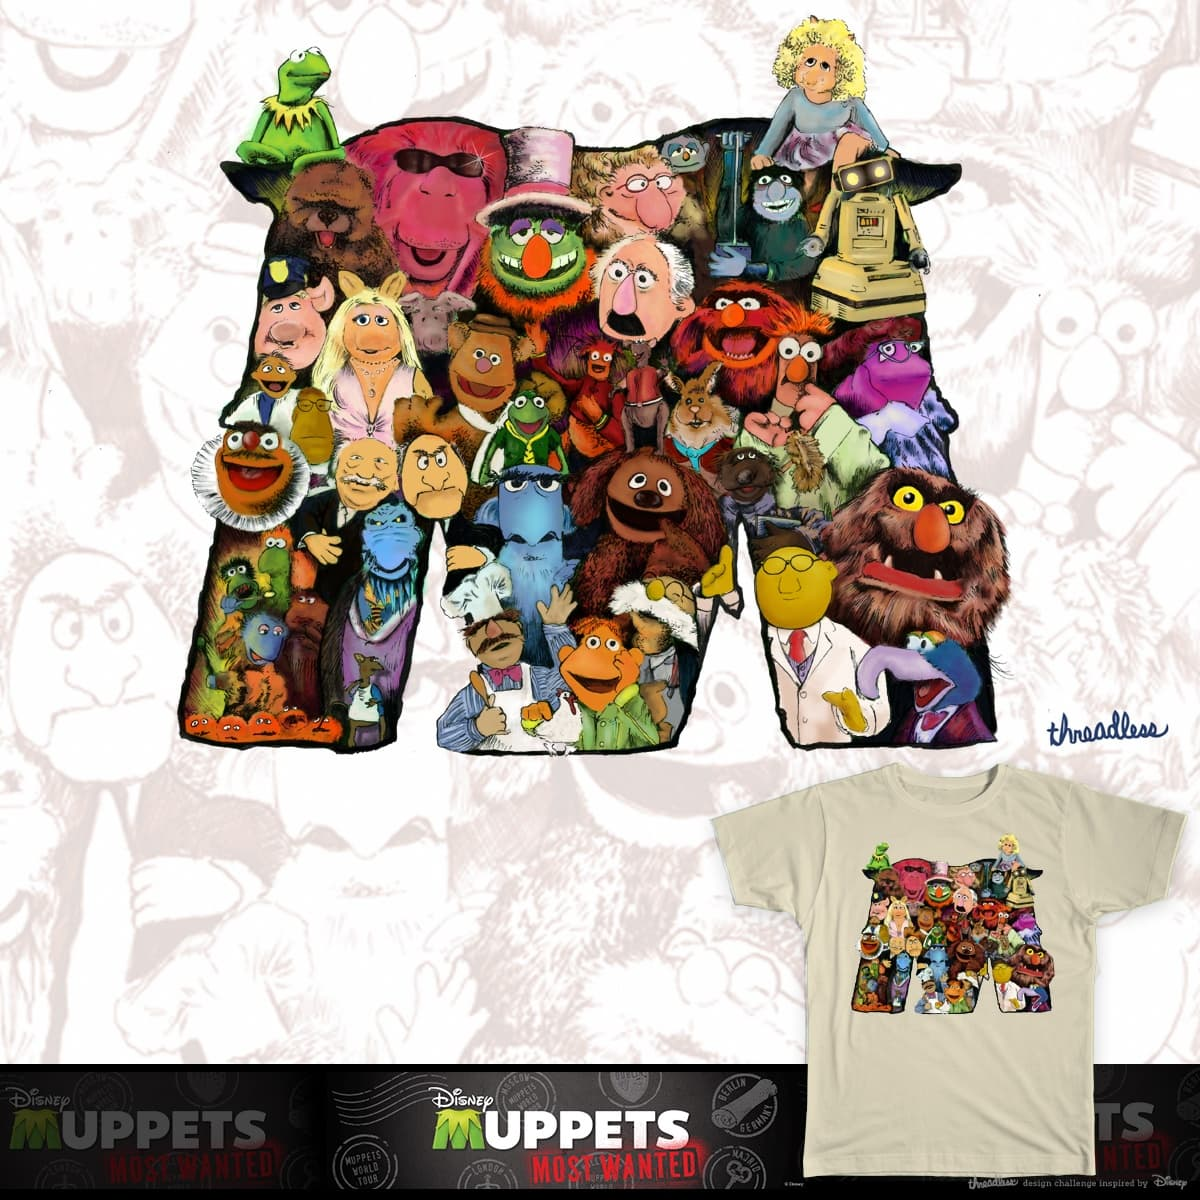 Muppets Most Wanted  by Joostdesign on Threadless